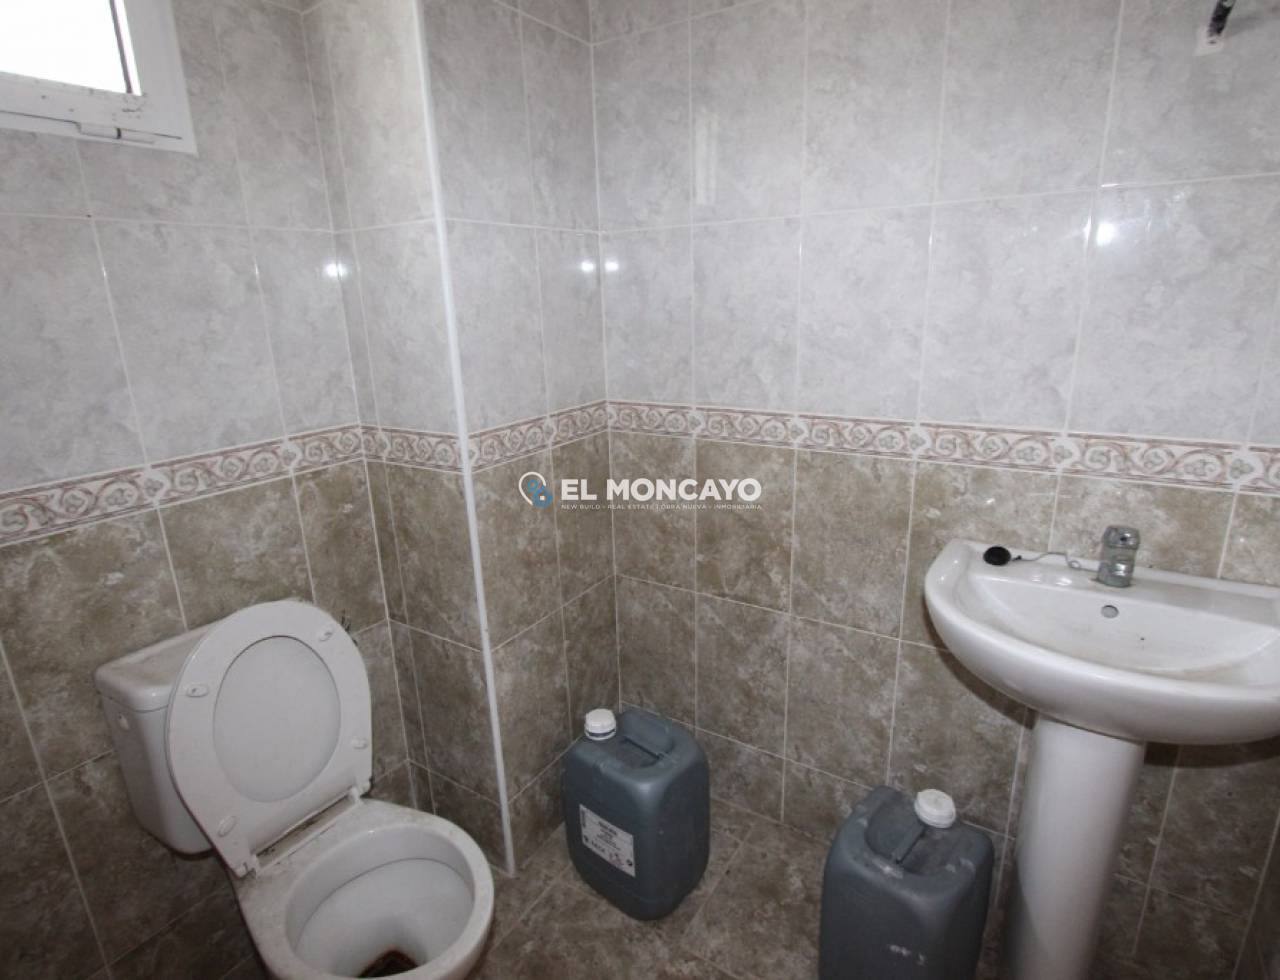 A Vendre - Local commercial - Guardamar del Segura - SUP 7 - Port Sportif